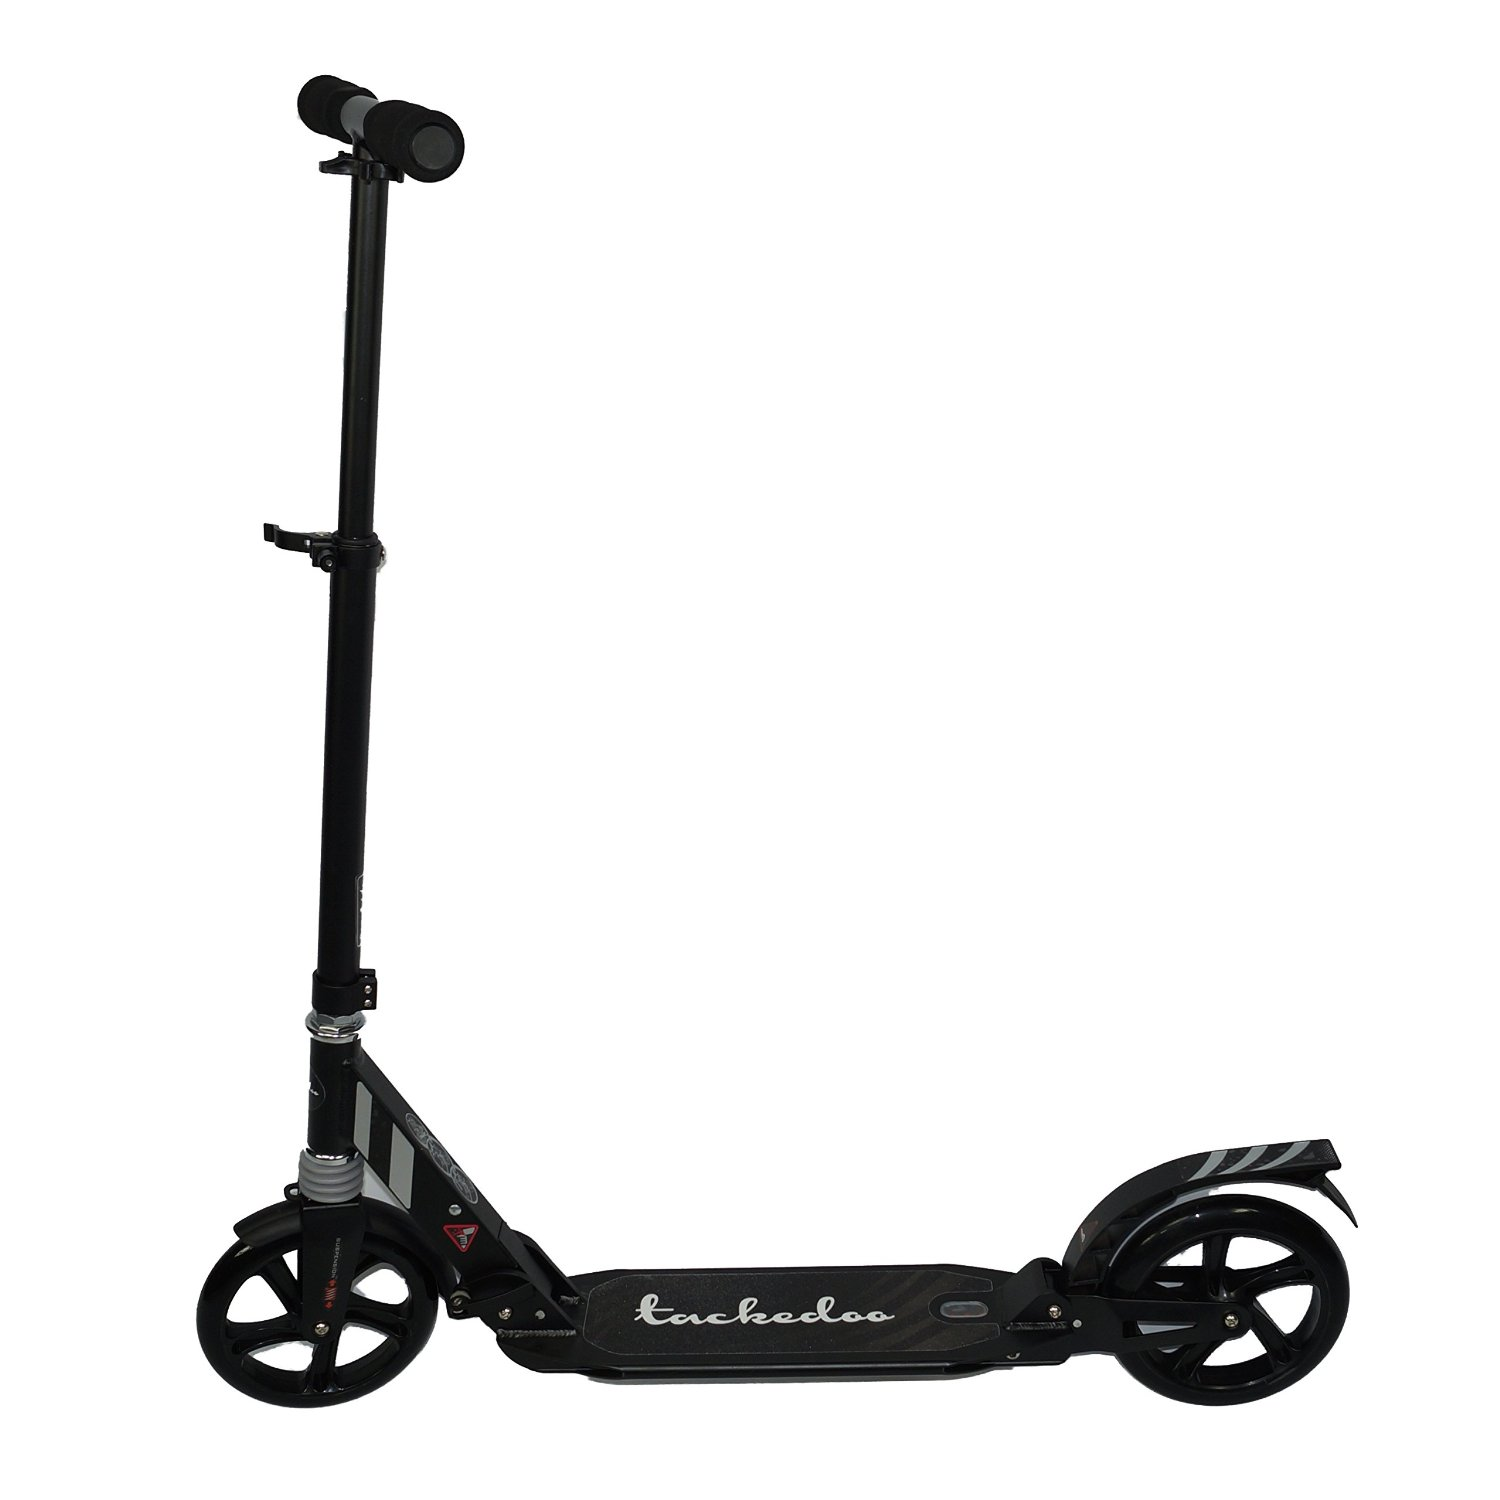 Tackedoo Adults & Teens Urban Kick Scooter Review